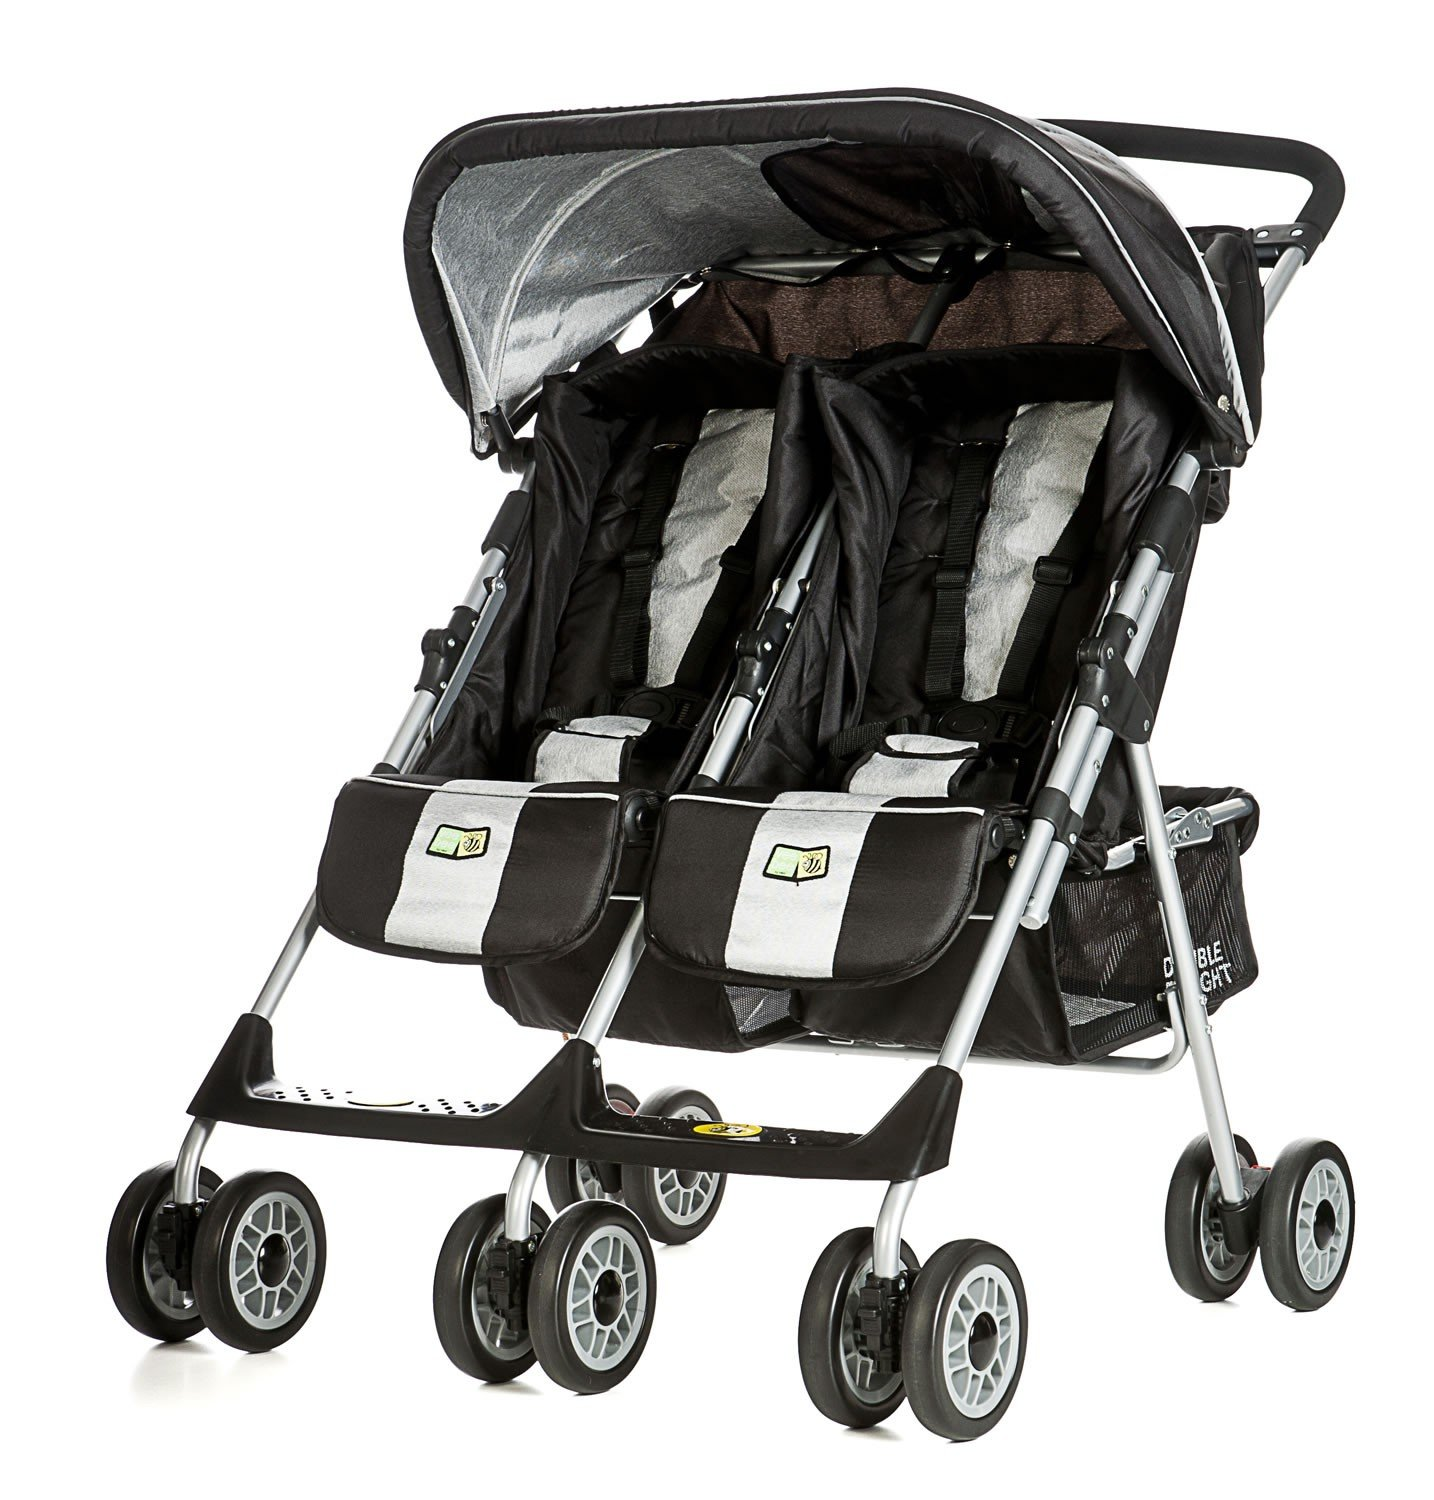 Veebee Double Delight Twin Pram A Review In Melbourne